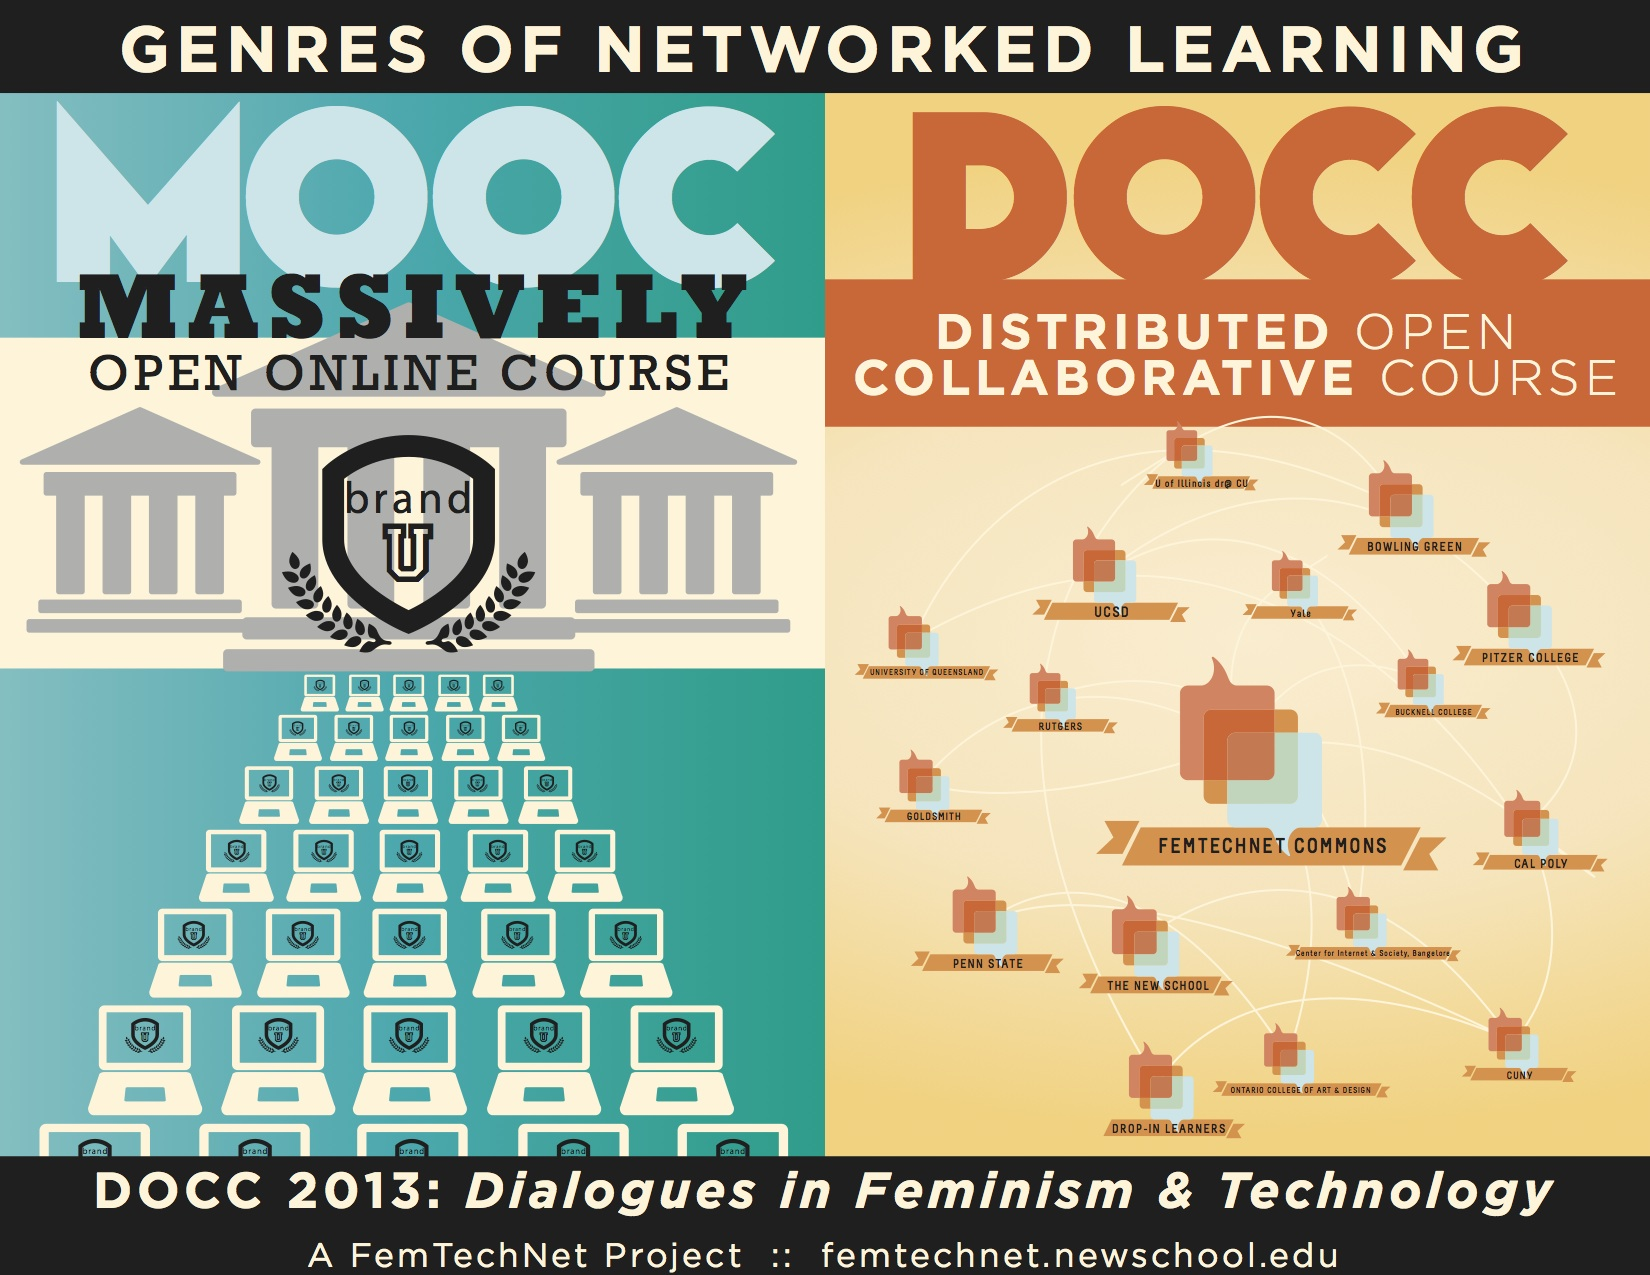 MOOC vs DOCC infographic. Created by Tony Gamino for Anne Balsamo, 2013.